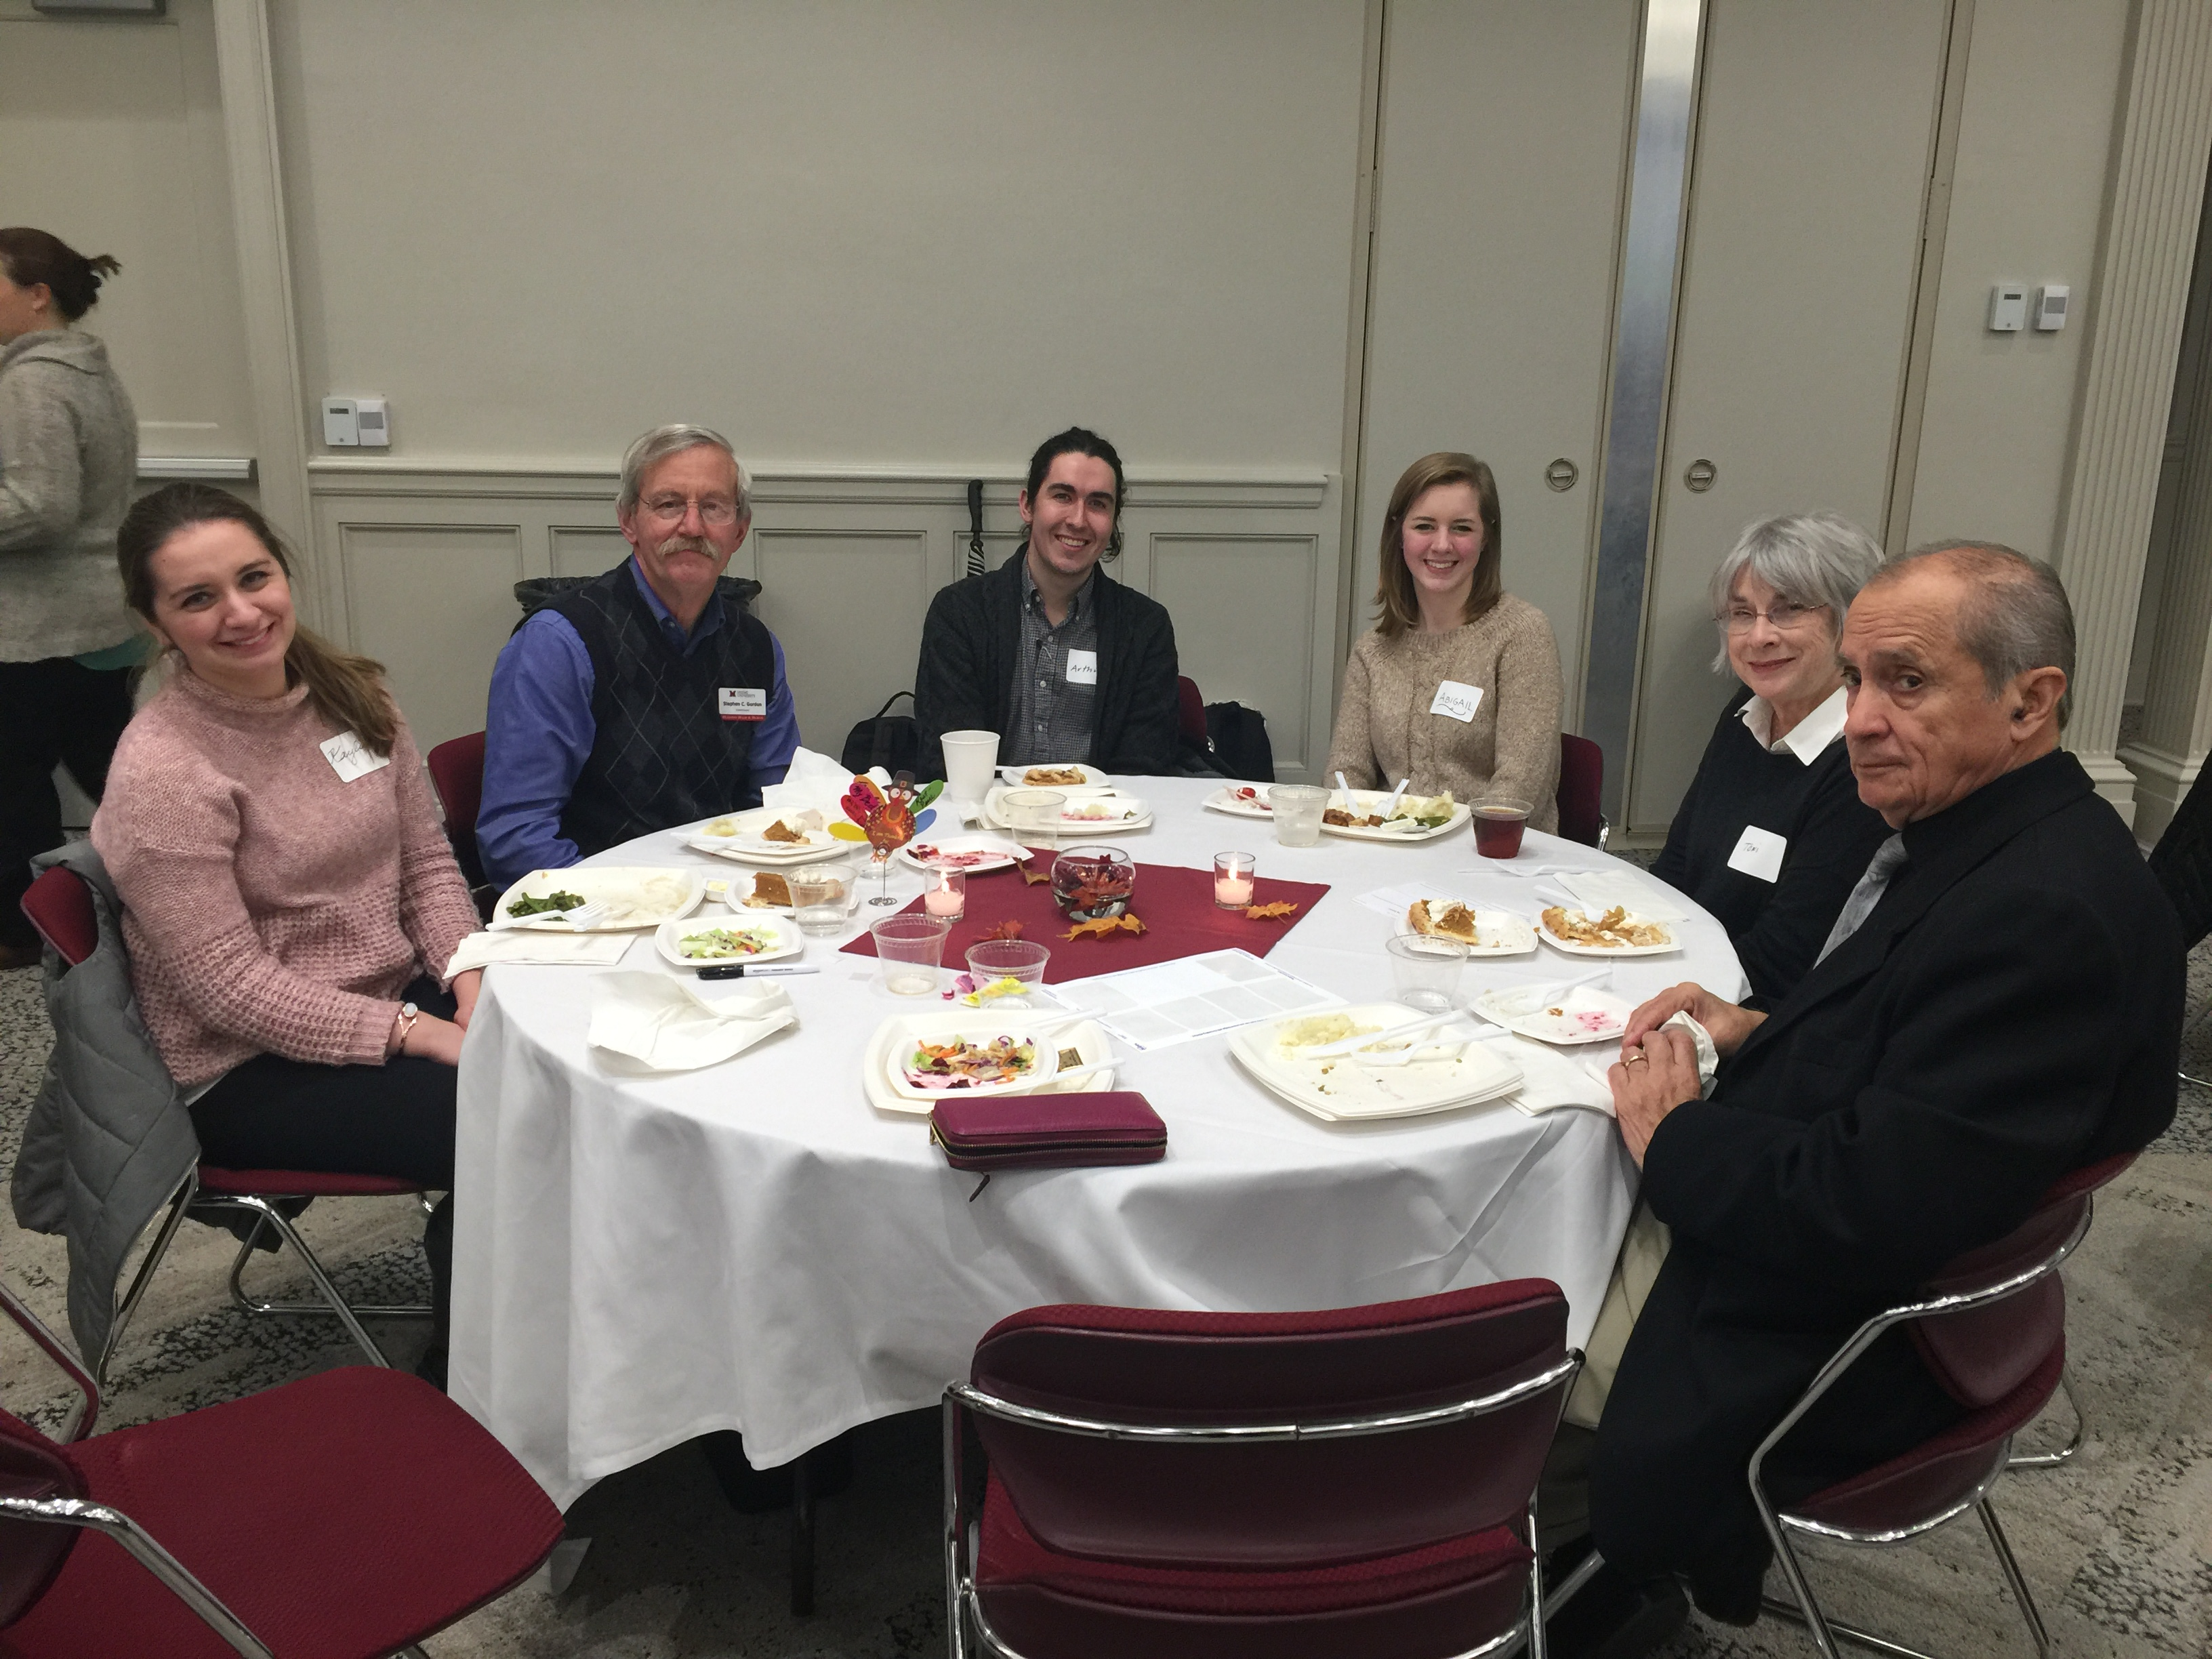 Kaylie Schunk and Steve Gordon join students and friends at the annual International Student and Scholar Services Thanksgiving Dinner